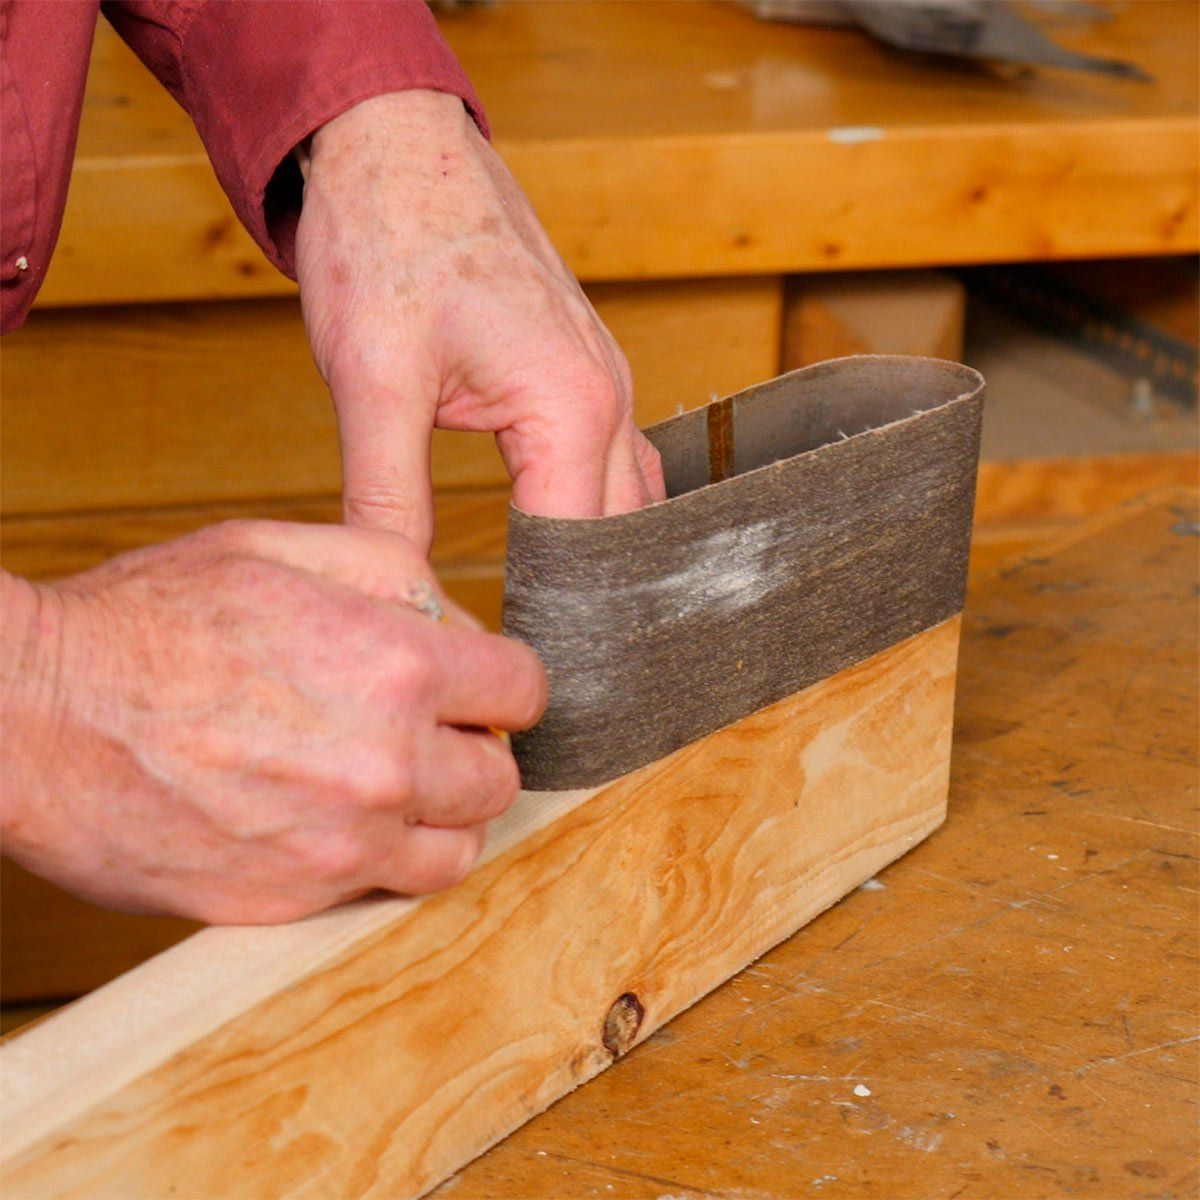 41 Genius Sanding Tips You Need to Know Sanding tips